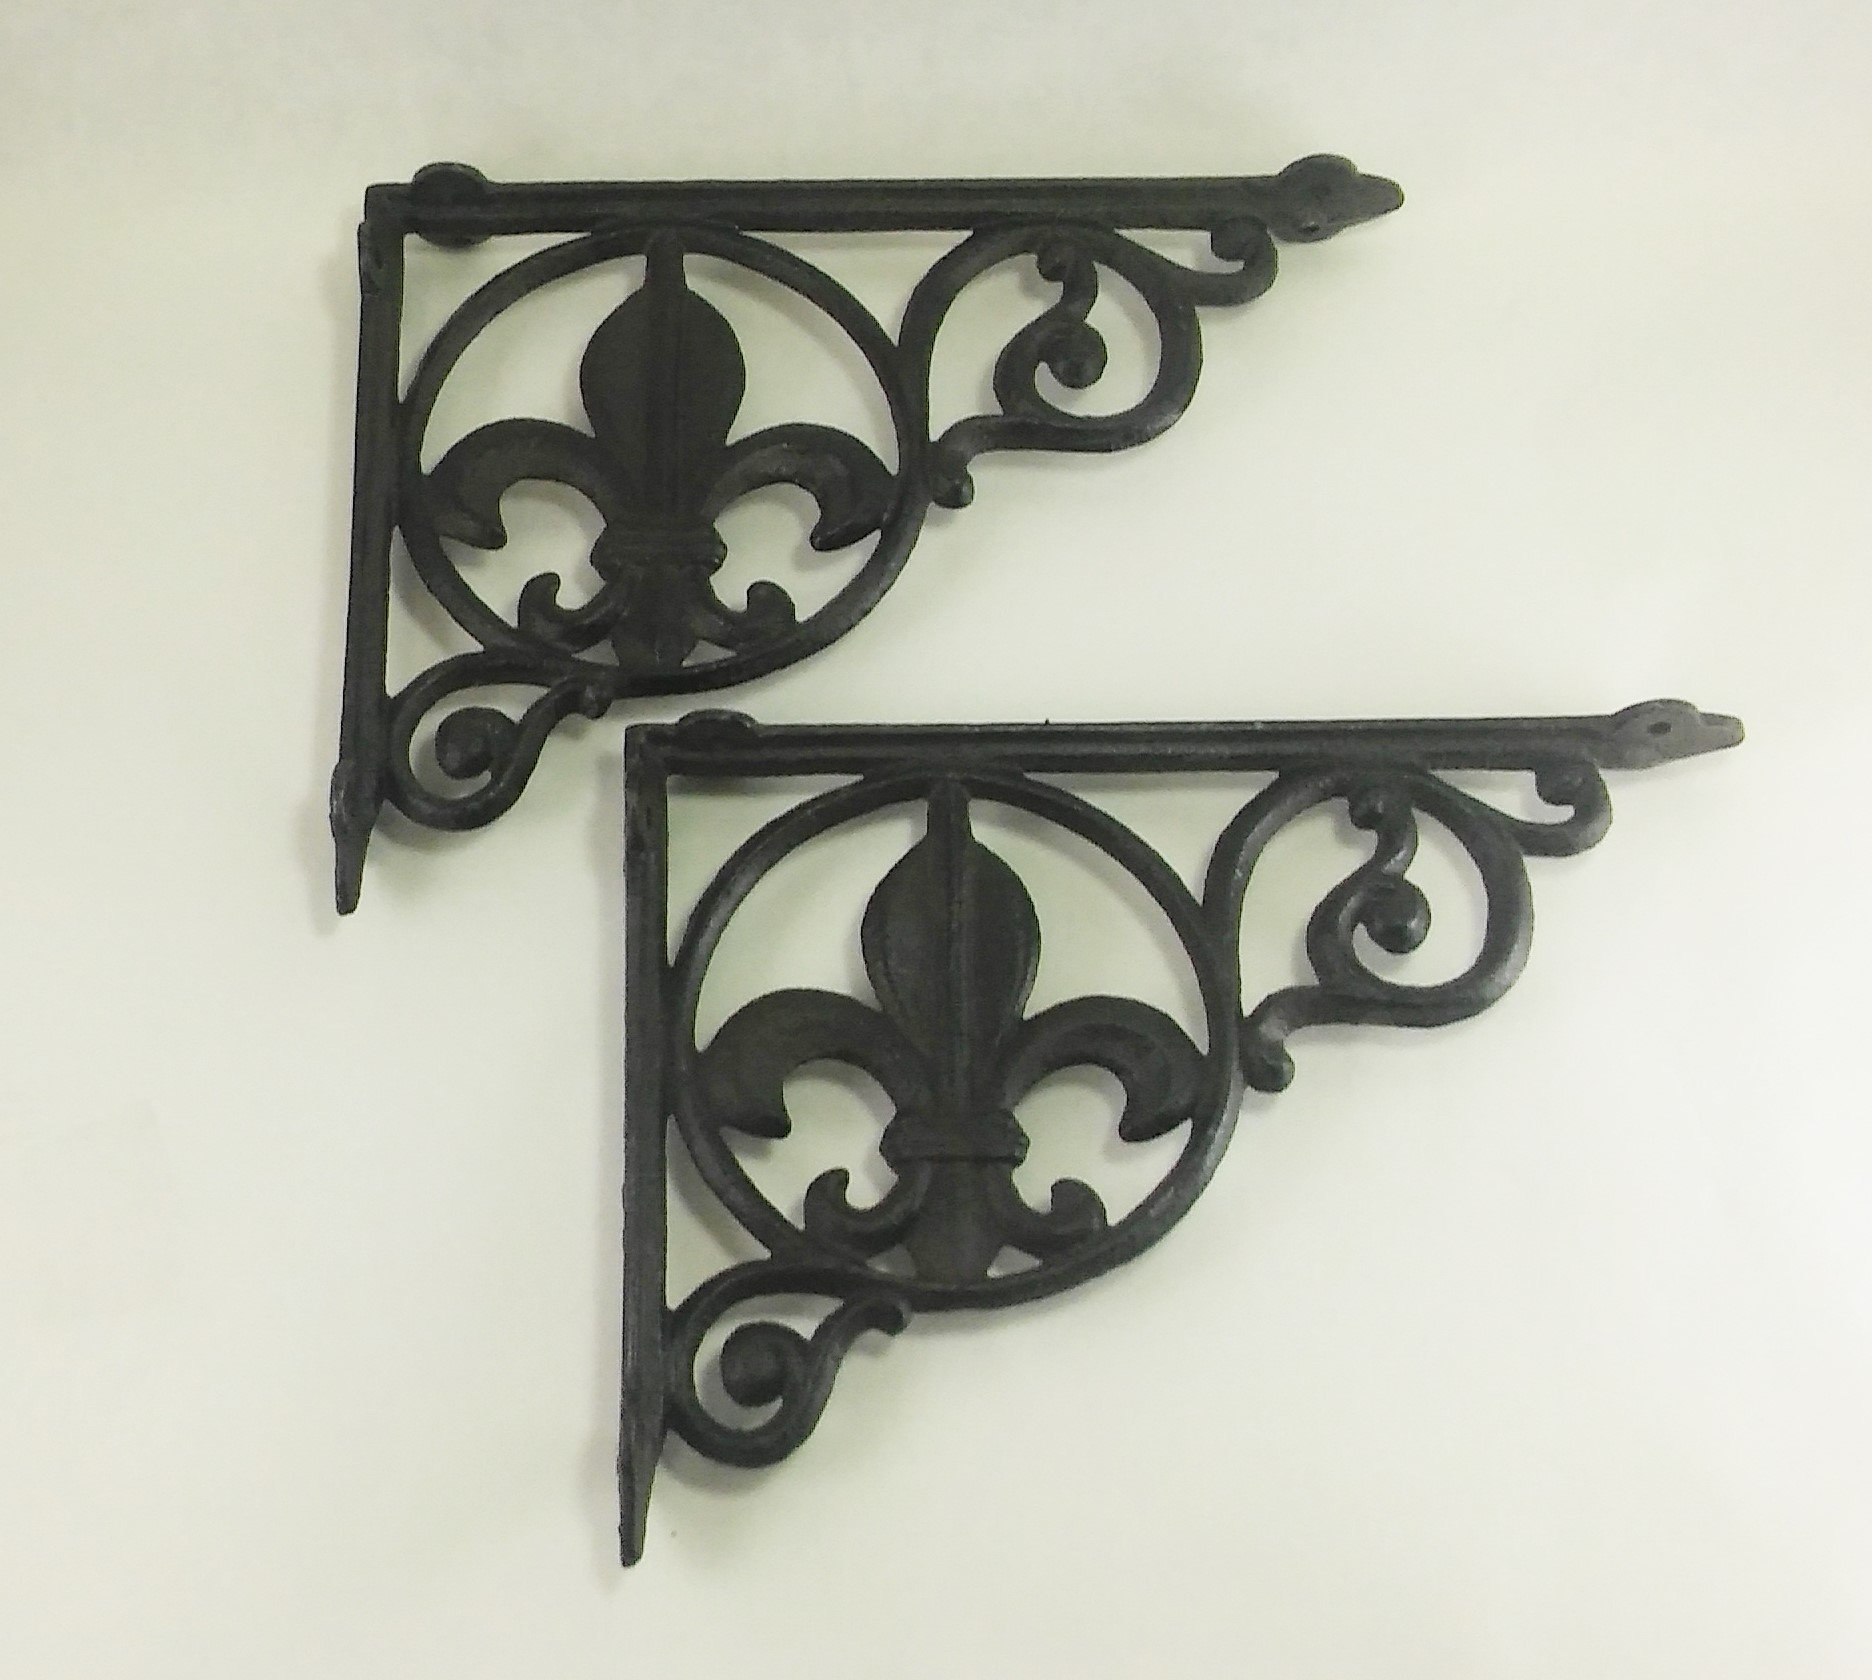 Aunt Chris' Products - Lot/Set of 2 - Heavy Cast Iron - Fluer-De-Lis Shelf Bracket - All-Purpose - Rustic Dark Bronze Color Finish - Can Be Used Indoor Or Outdoor by dist by American mud products